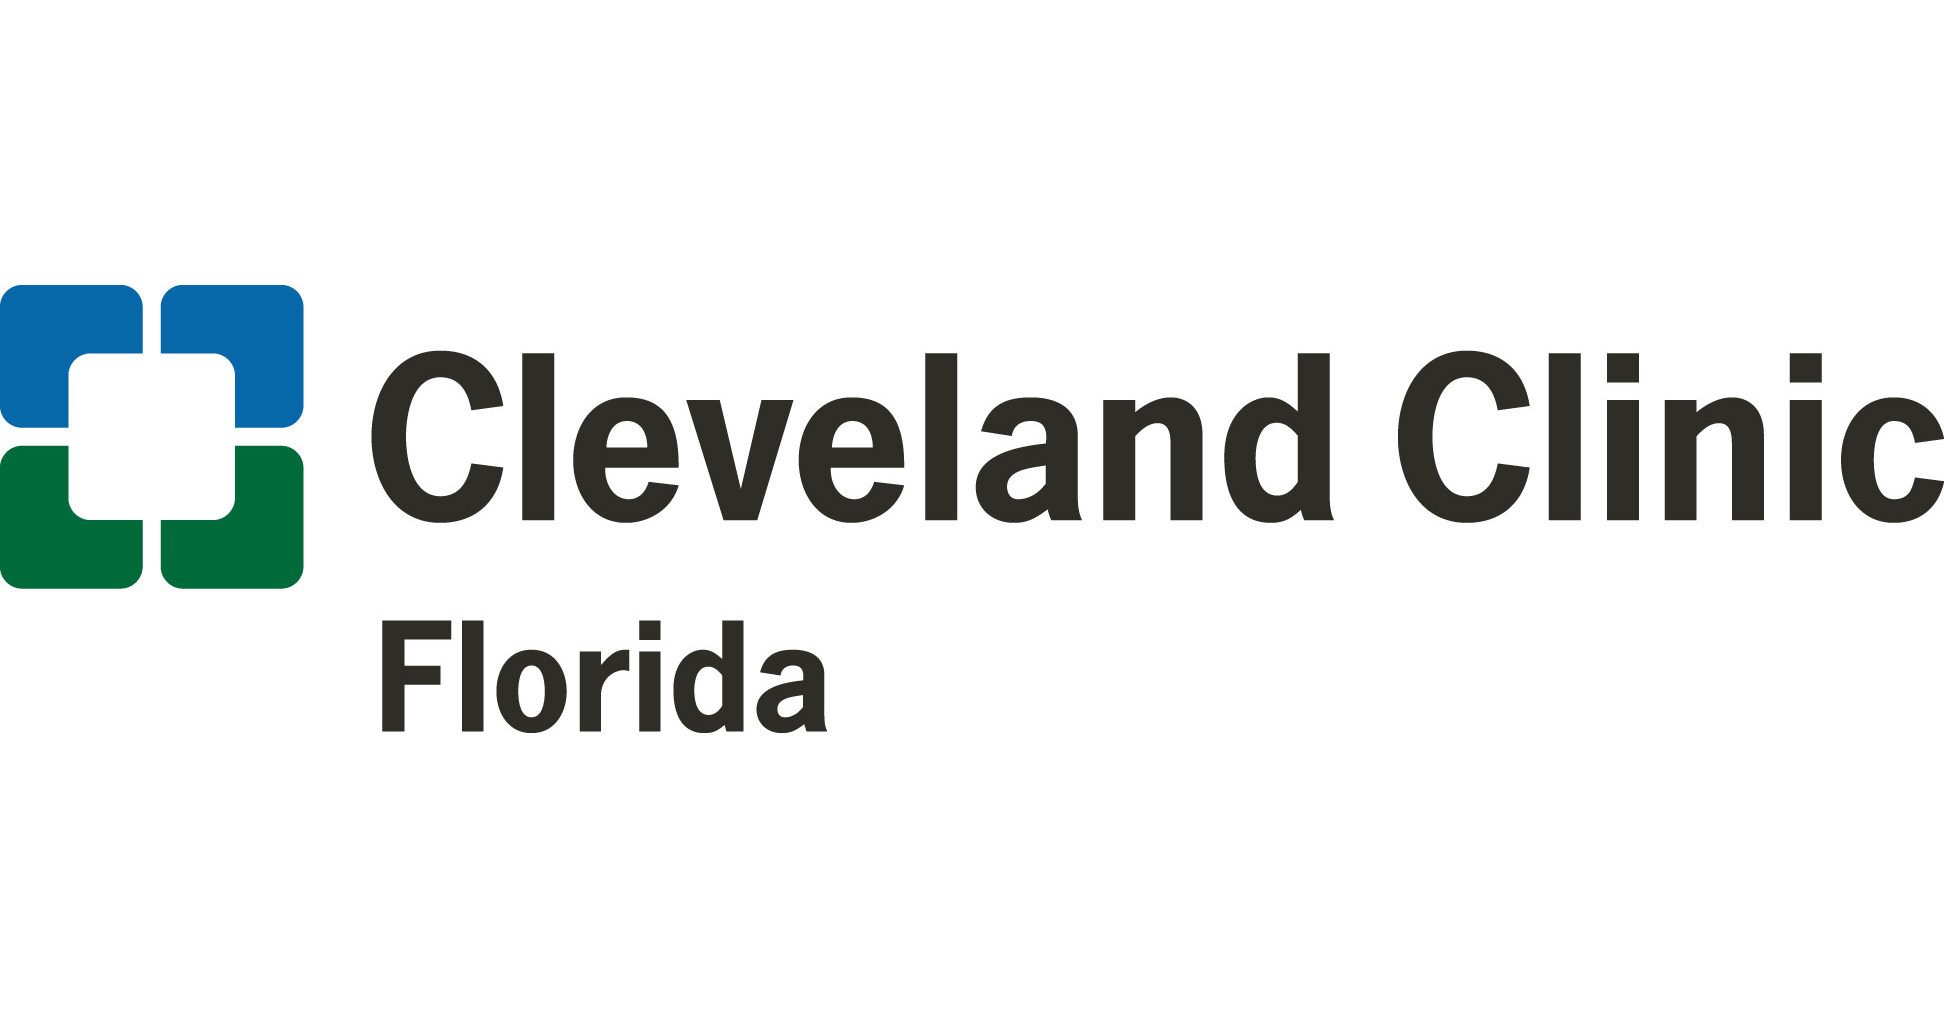 Cleveland Clinic Florida Ranks #1 In Miami-Fort Lauderdale Metro Area By U.S. News & World Report